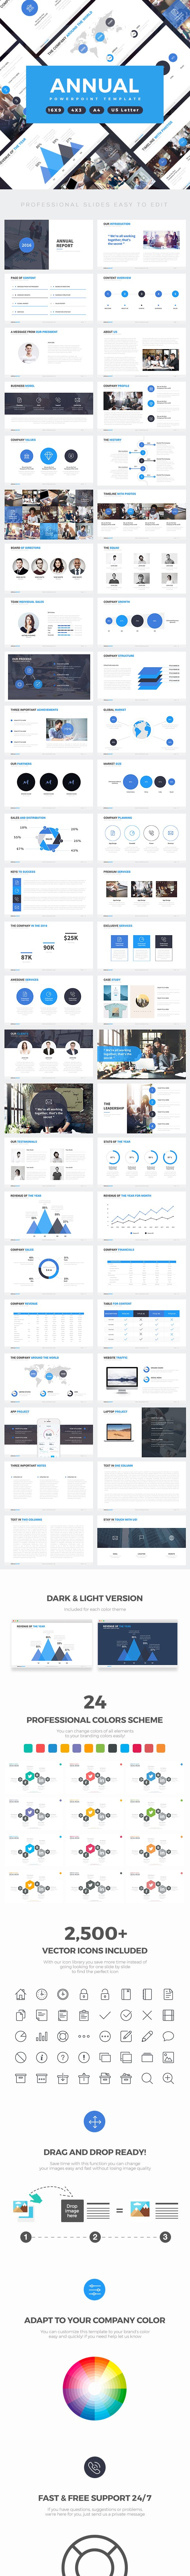 annual report professional powerpoint template by slidefusion